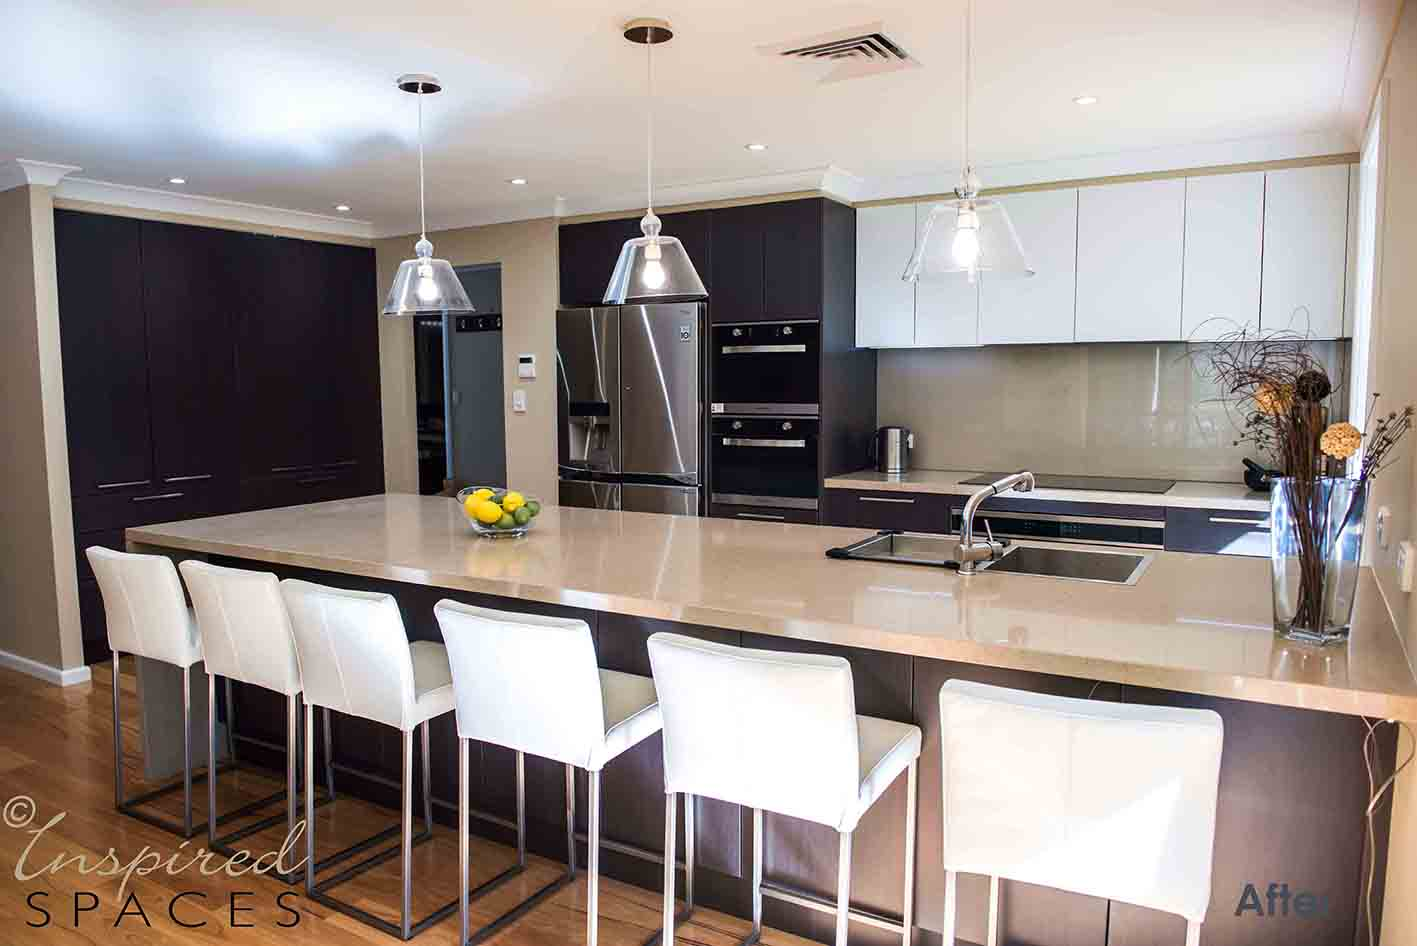 The new kitchen offers plenty of island bench space for food preparation